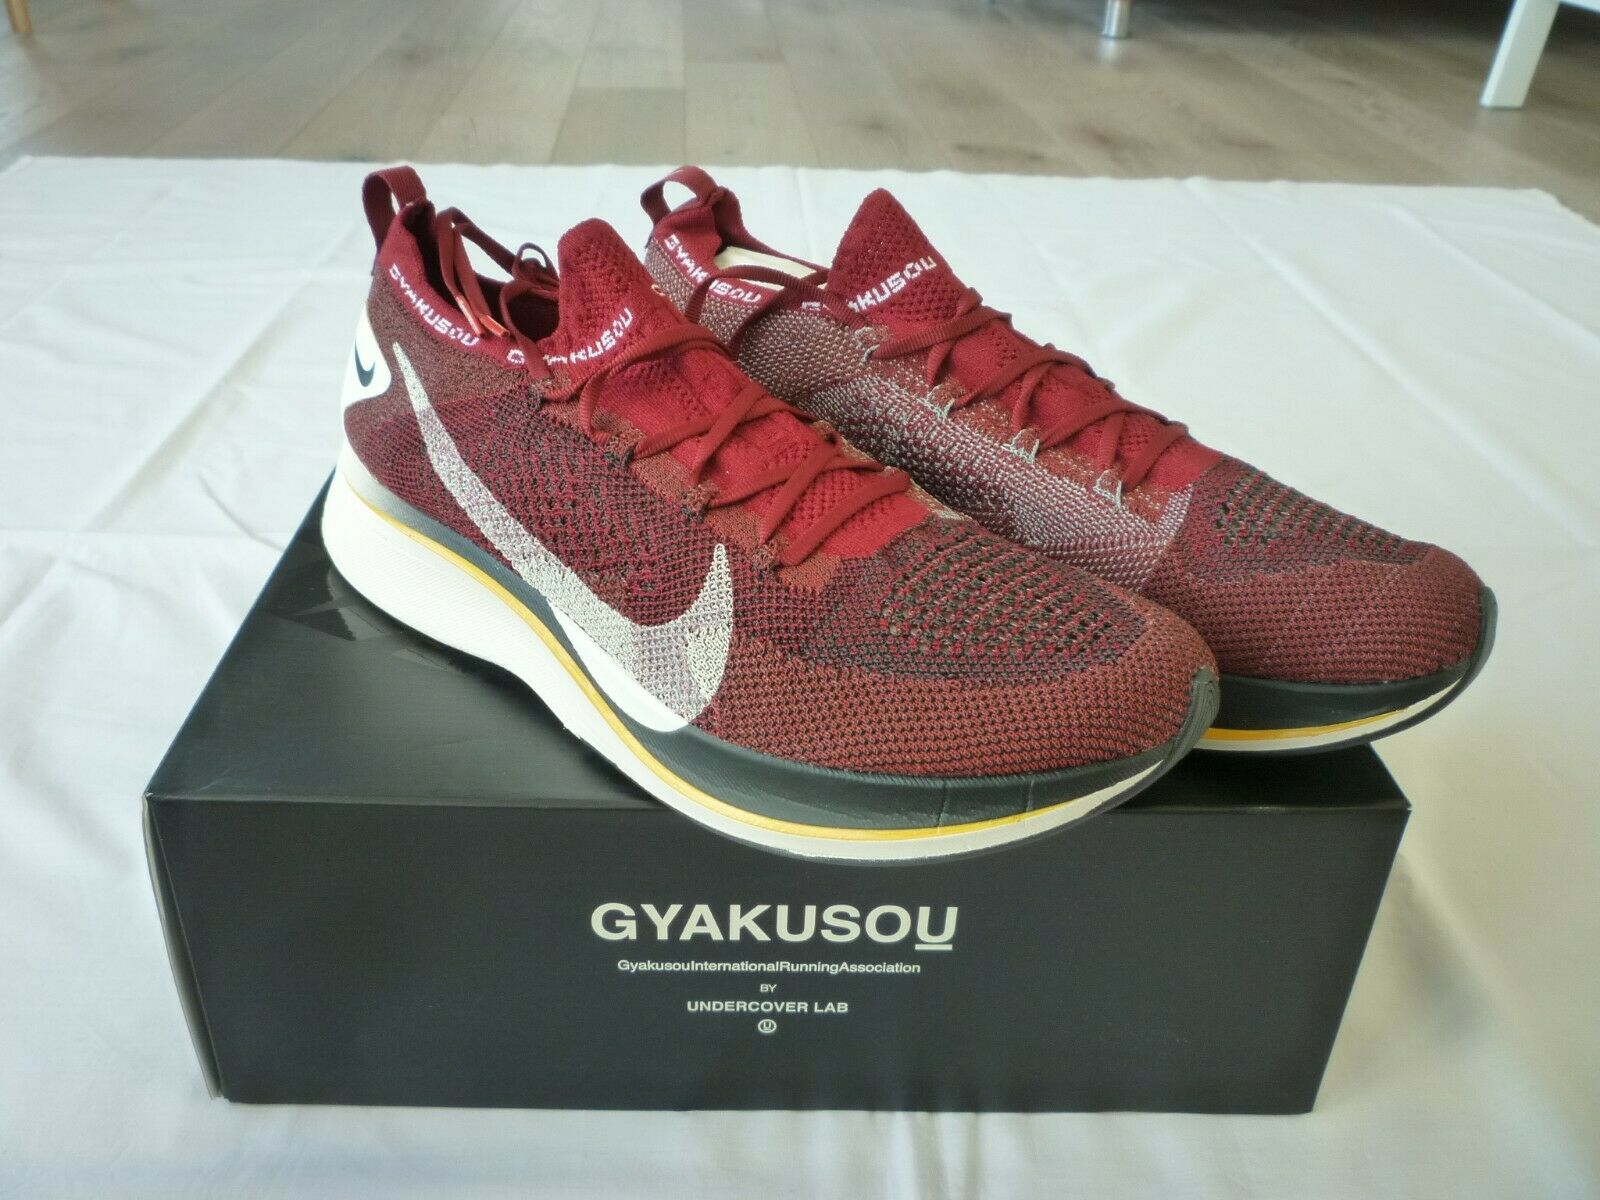 Nike Zoom Vaporfly 4% Flyknit Gyakusou Team Red US 13 AV7998-600 Run